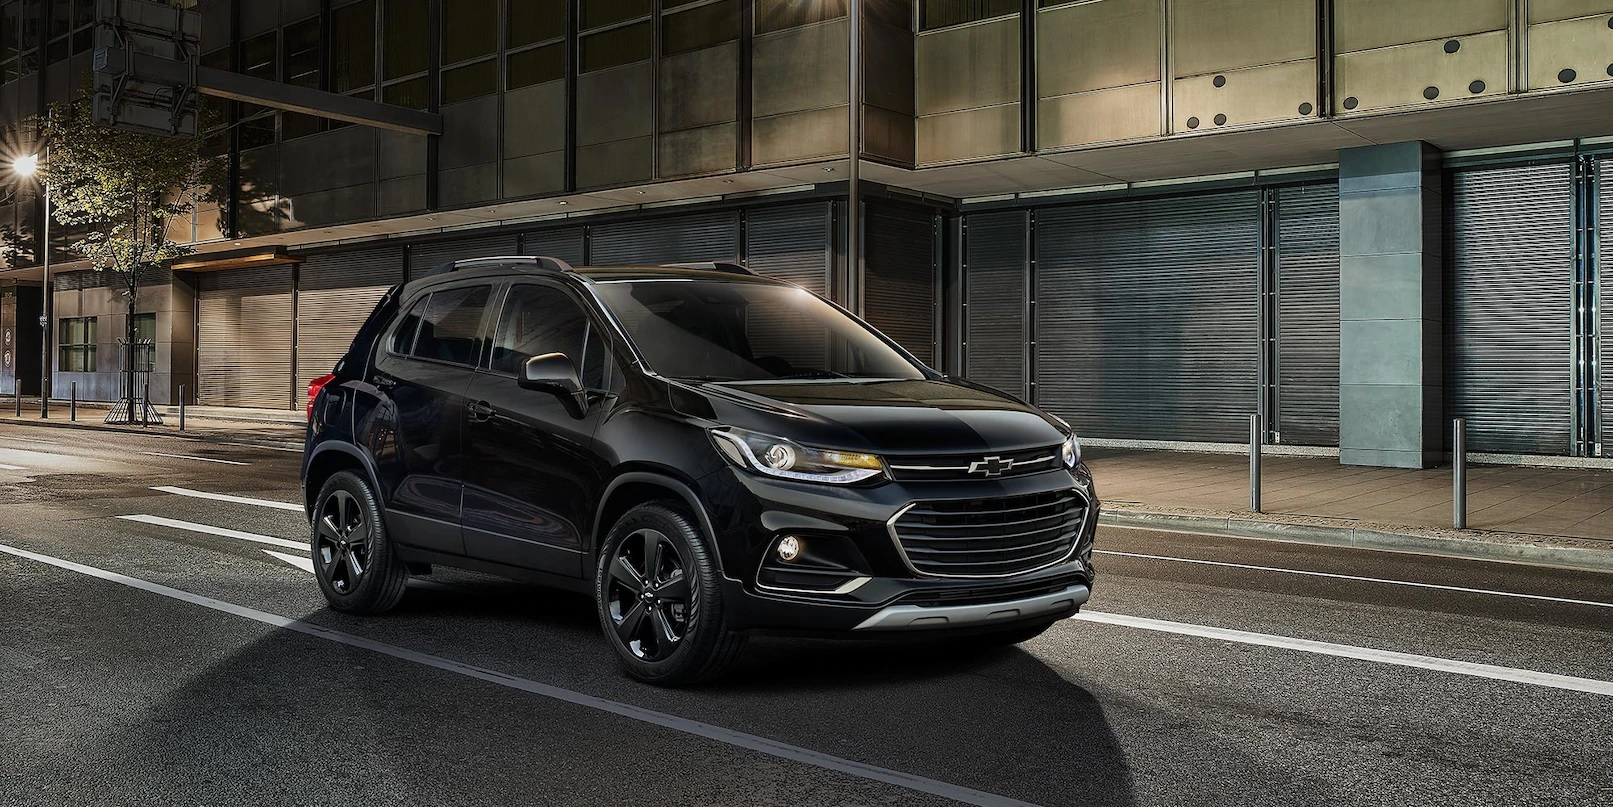 2019 Chevrolet Trax Leasing near Valparaiso, IN